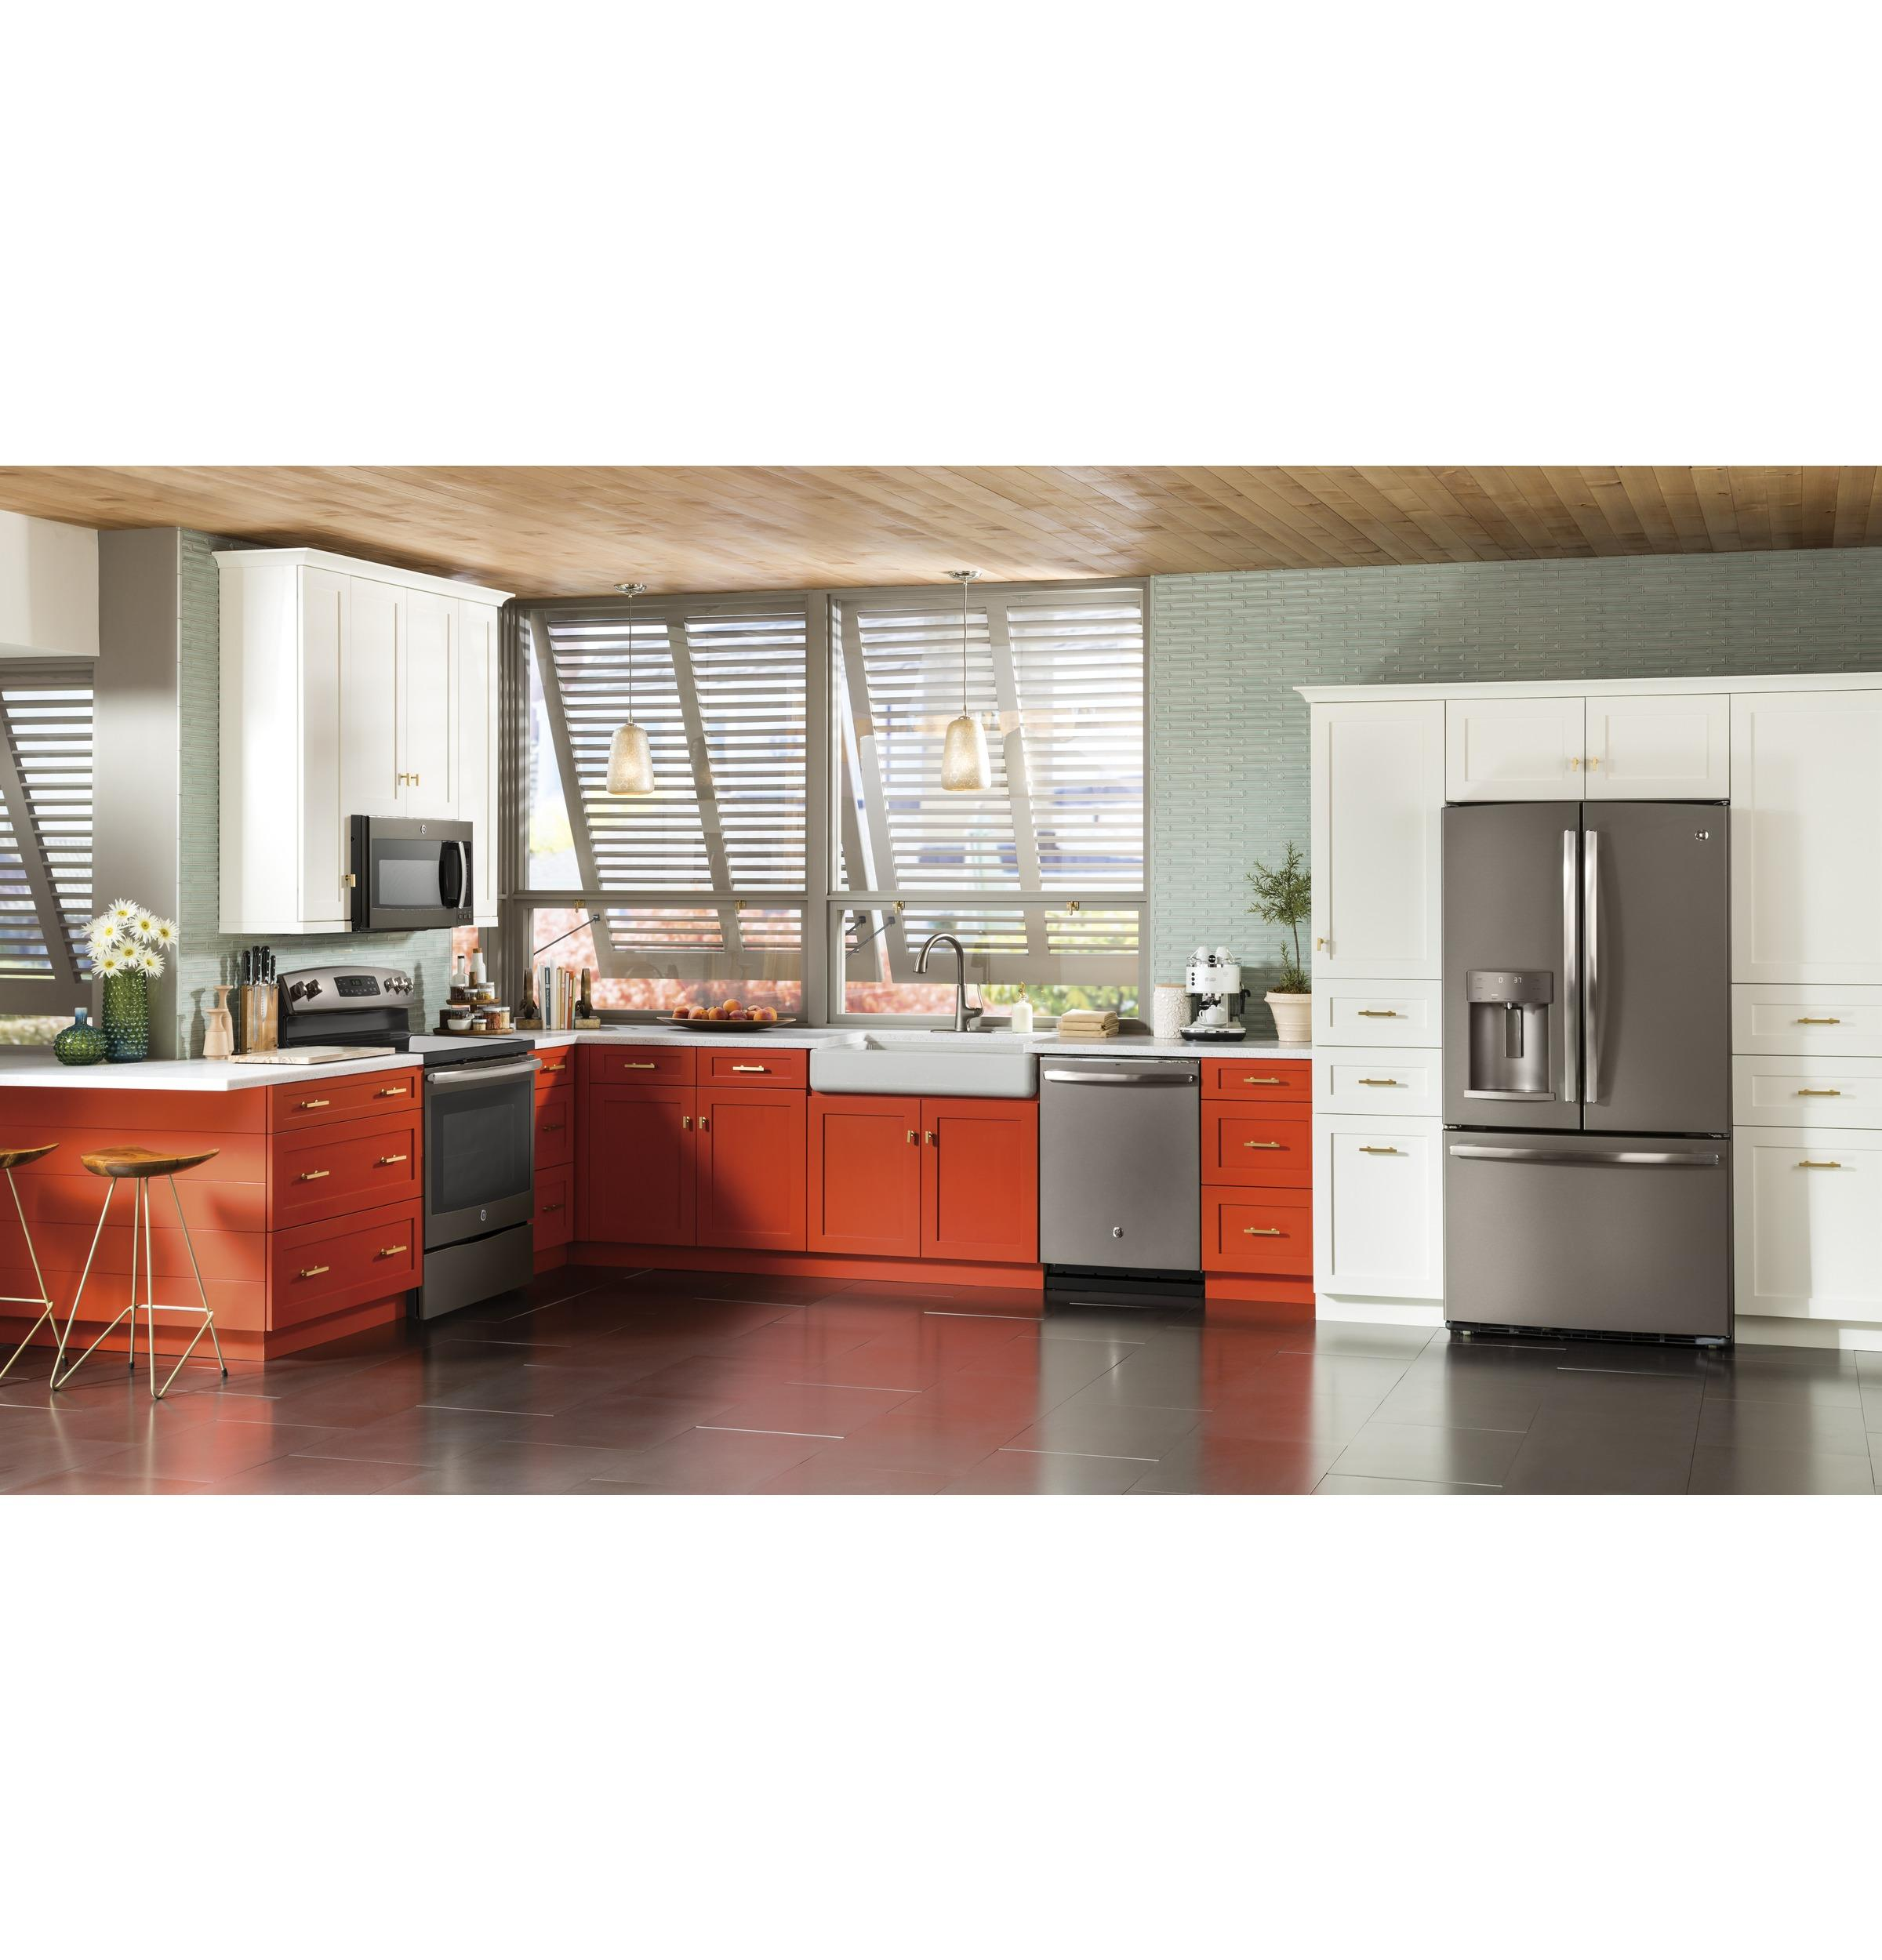 GDT655SMJESGE ®Stainless Steel Interior Dishwasher with